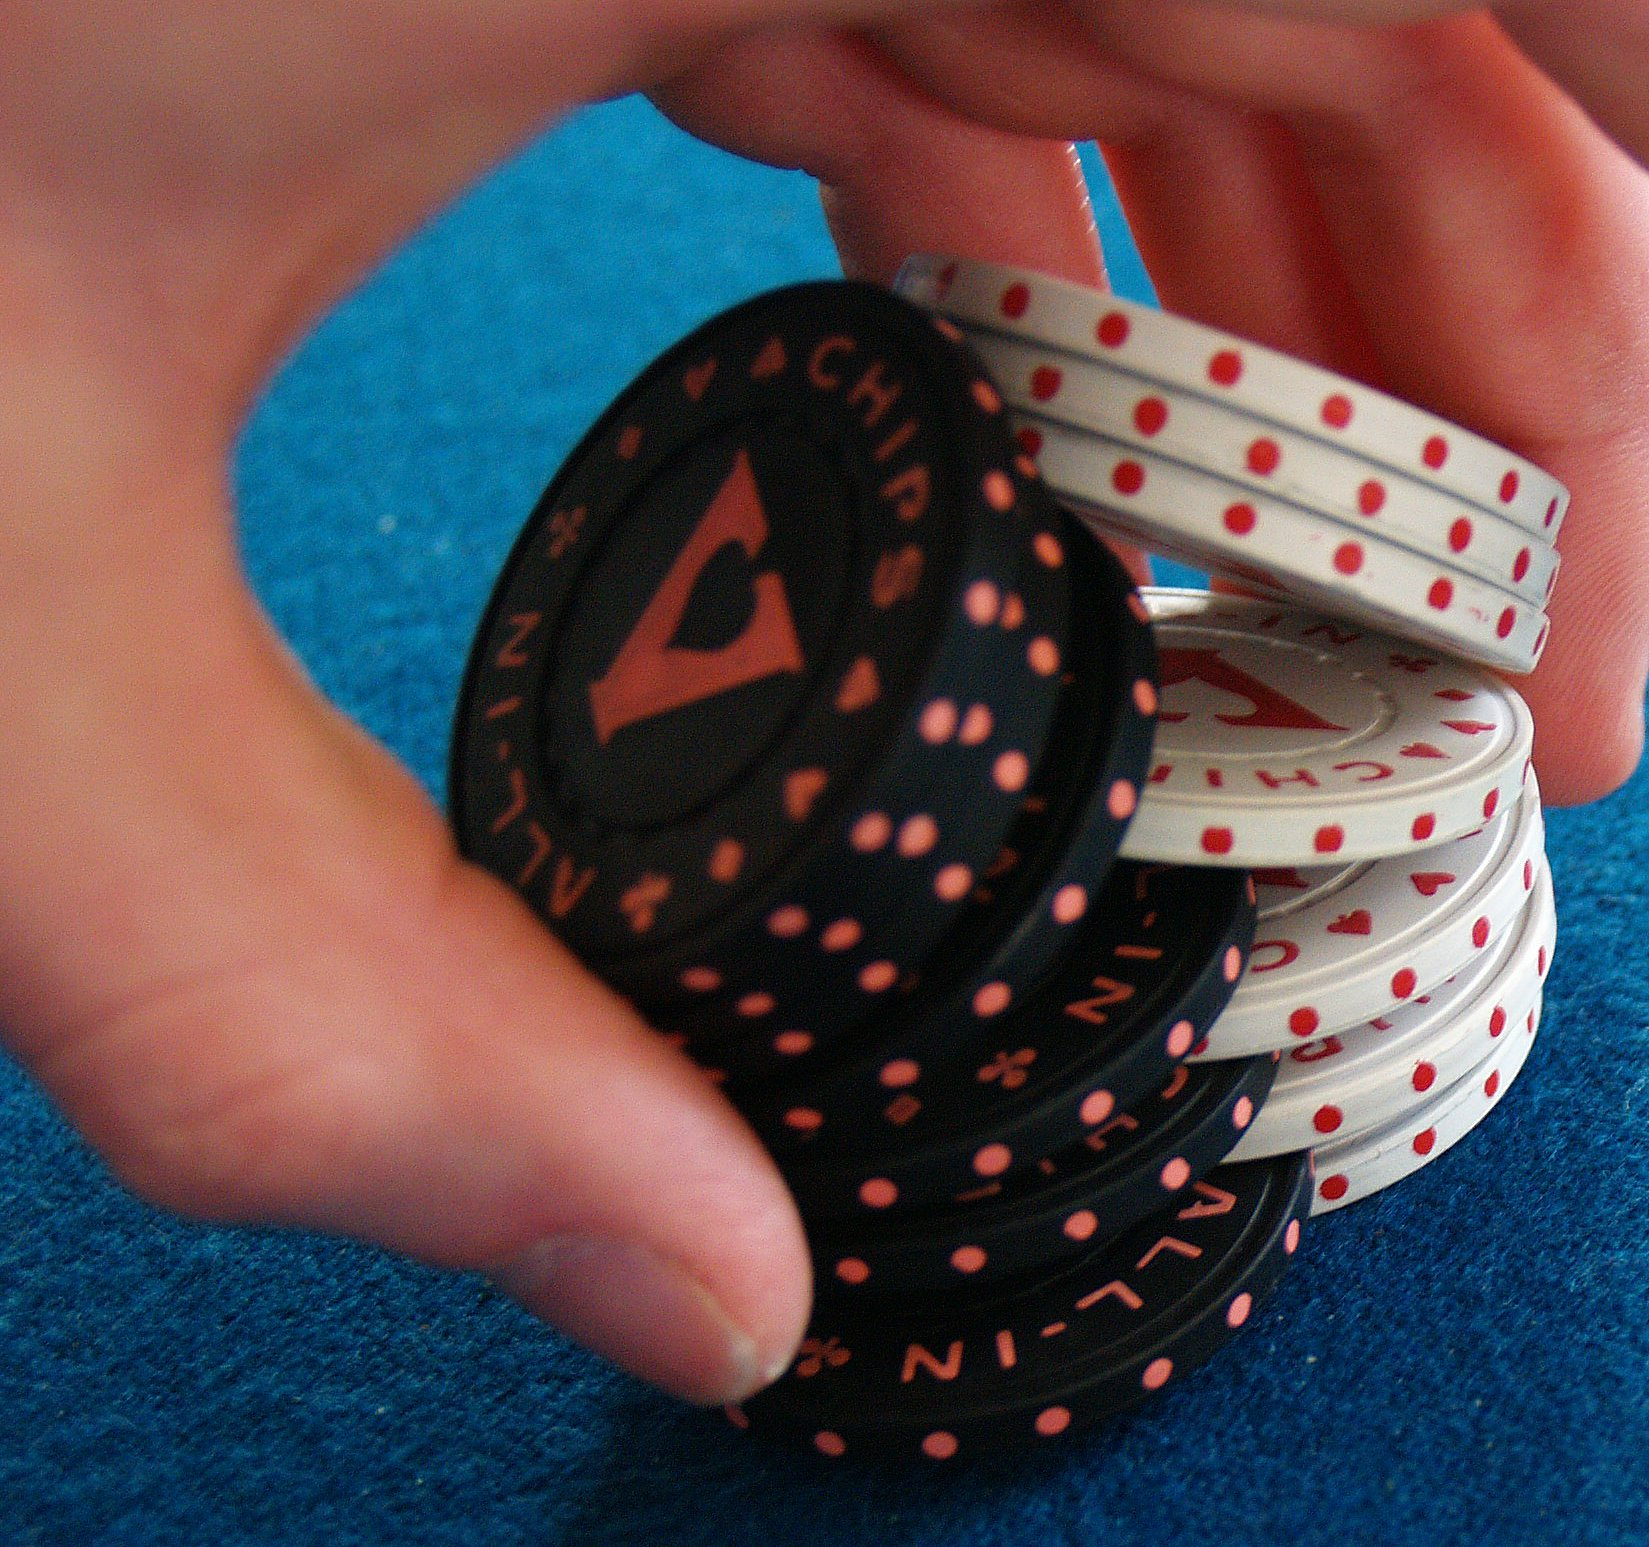 Online poker comes of age